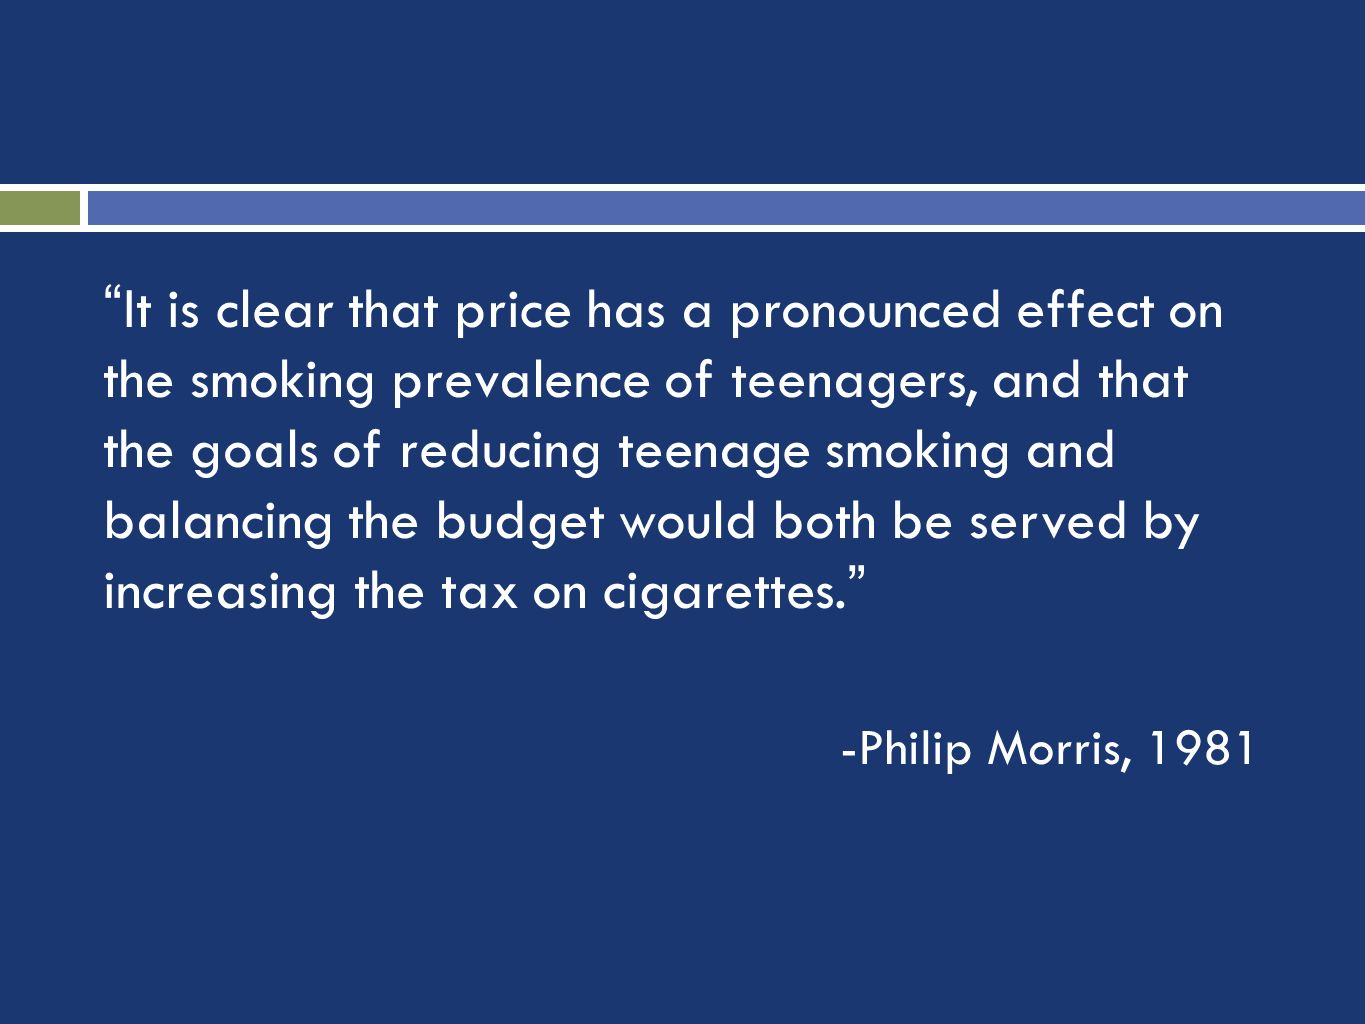 It is clear that price has a pronounced effect on the smoking prevalence of teenagers, and that the goals of reducing teenage smoking and balancing the budget would both be served by increasing the tax on cigarettes.